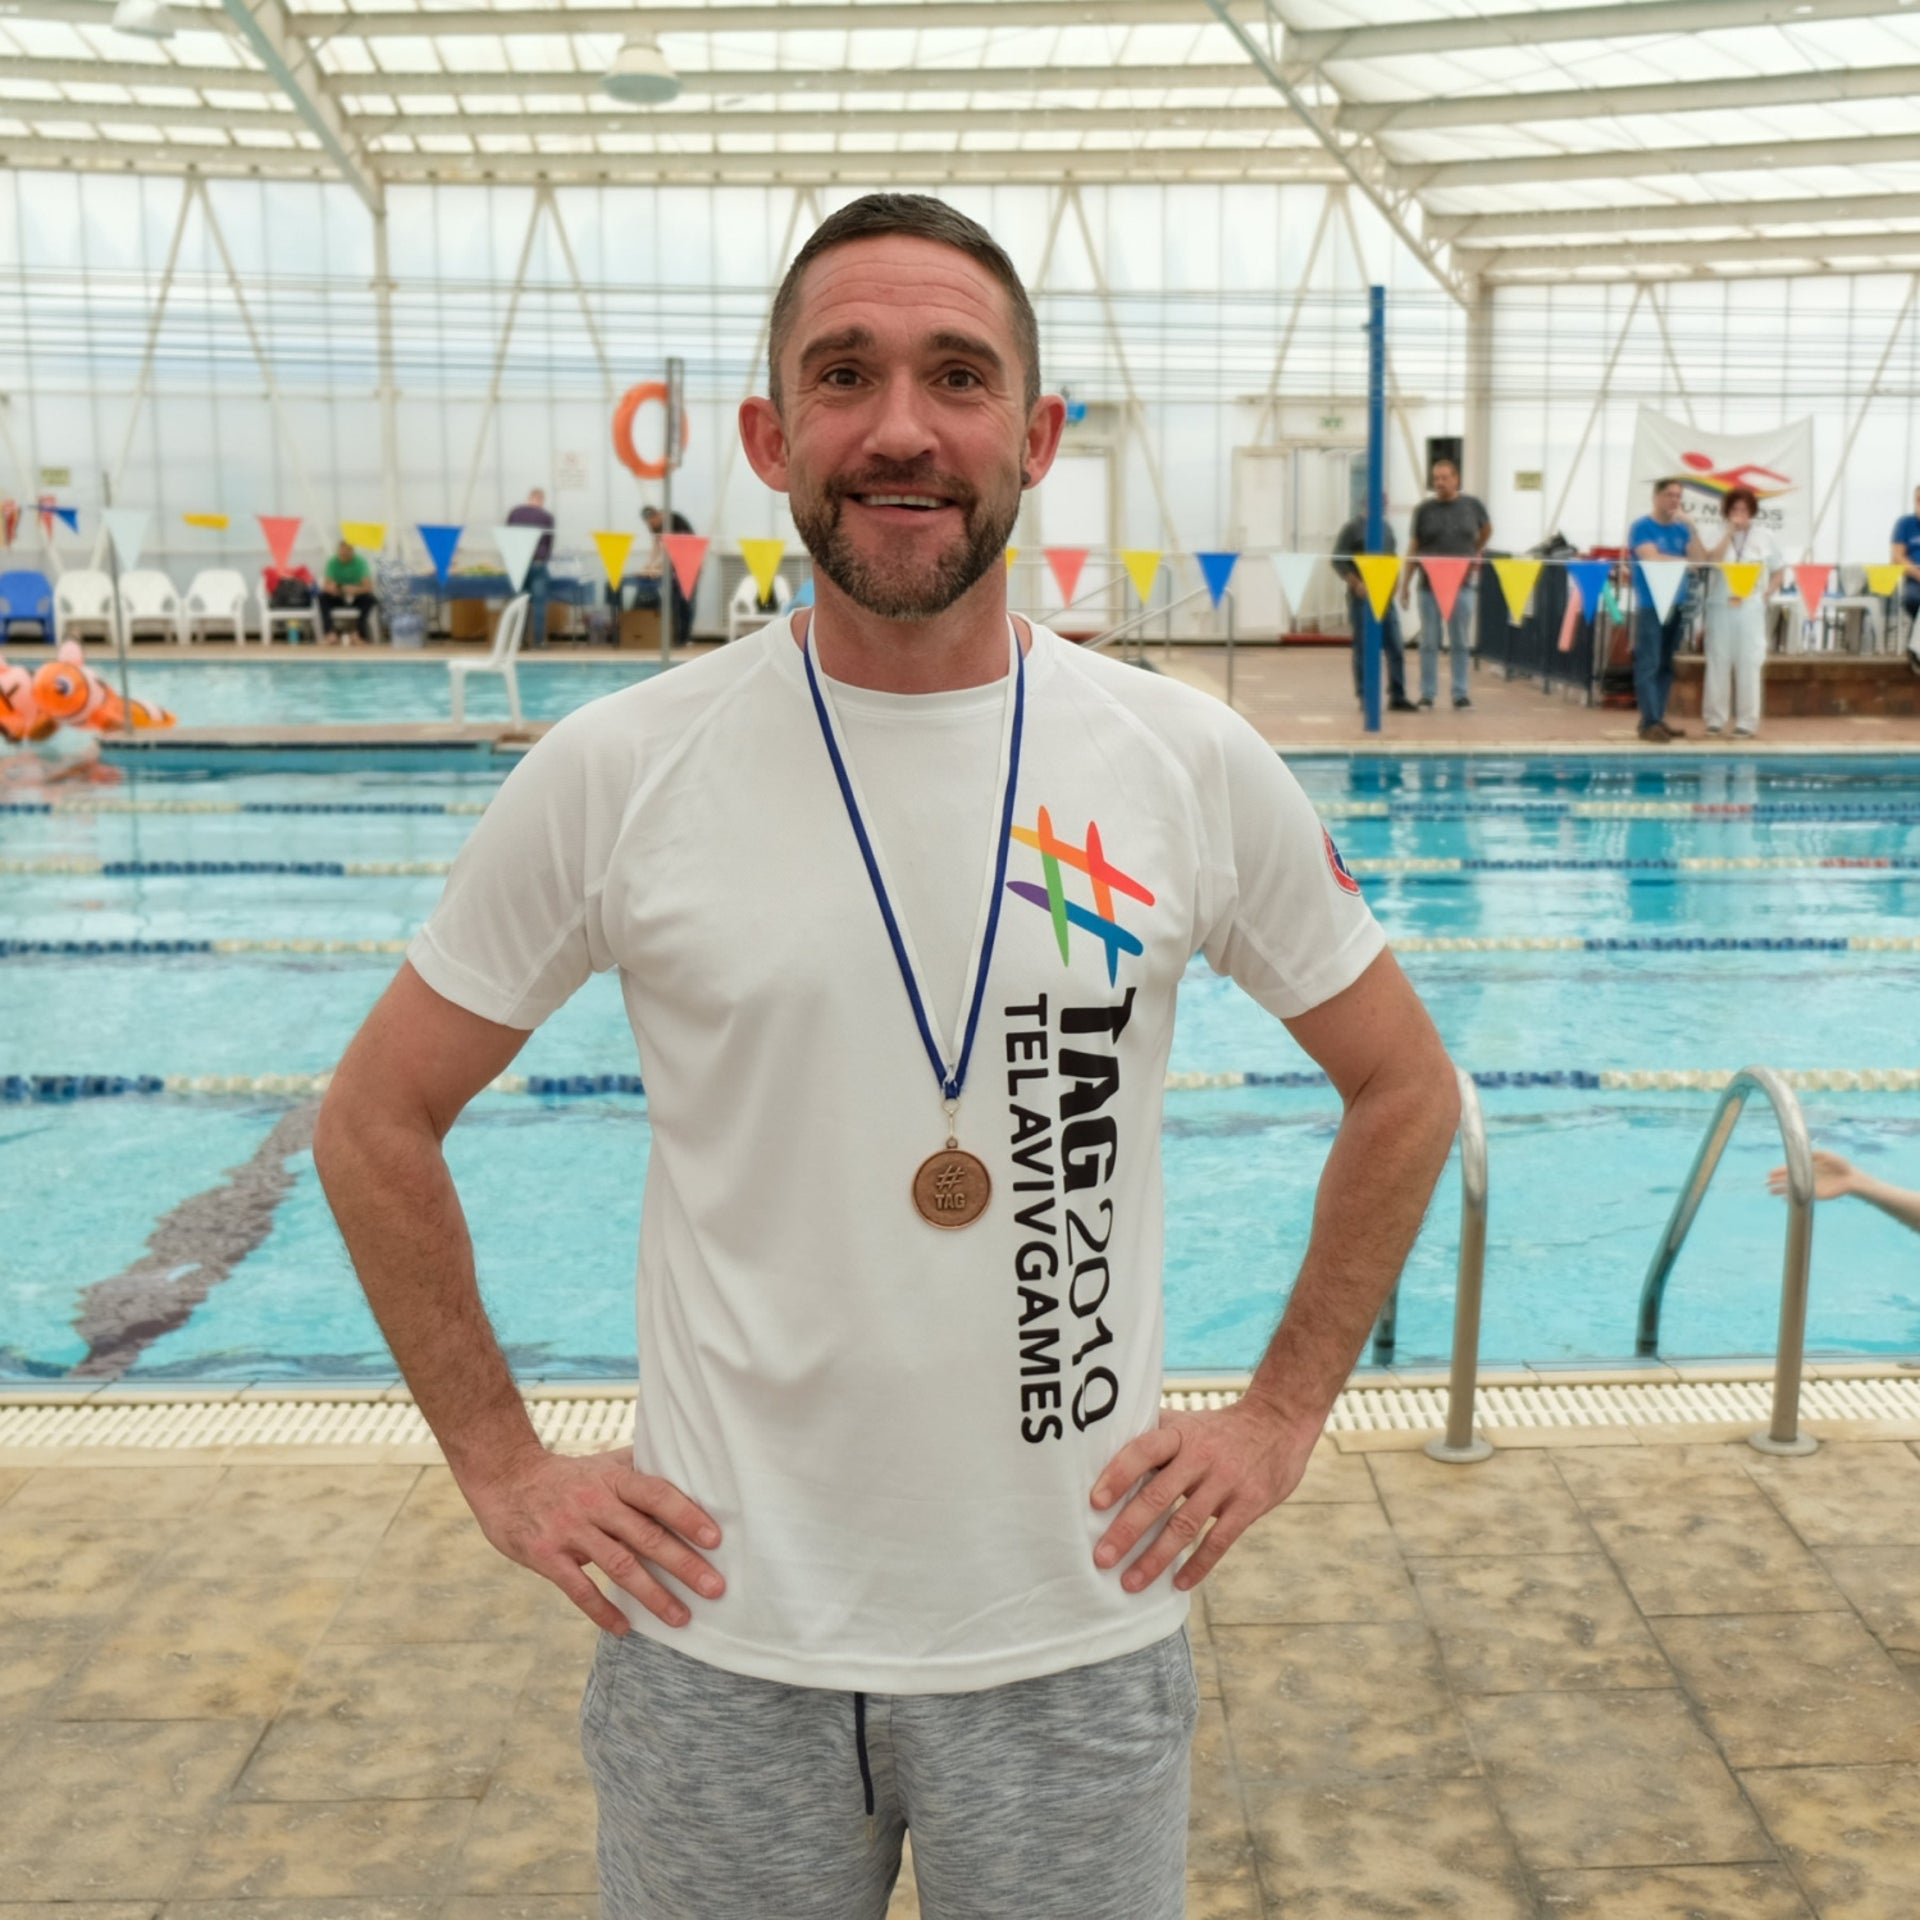 Tim van Hauwermeiren, who came to the games with the BGS gay swim team from Brussels.